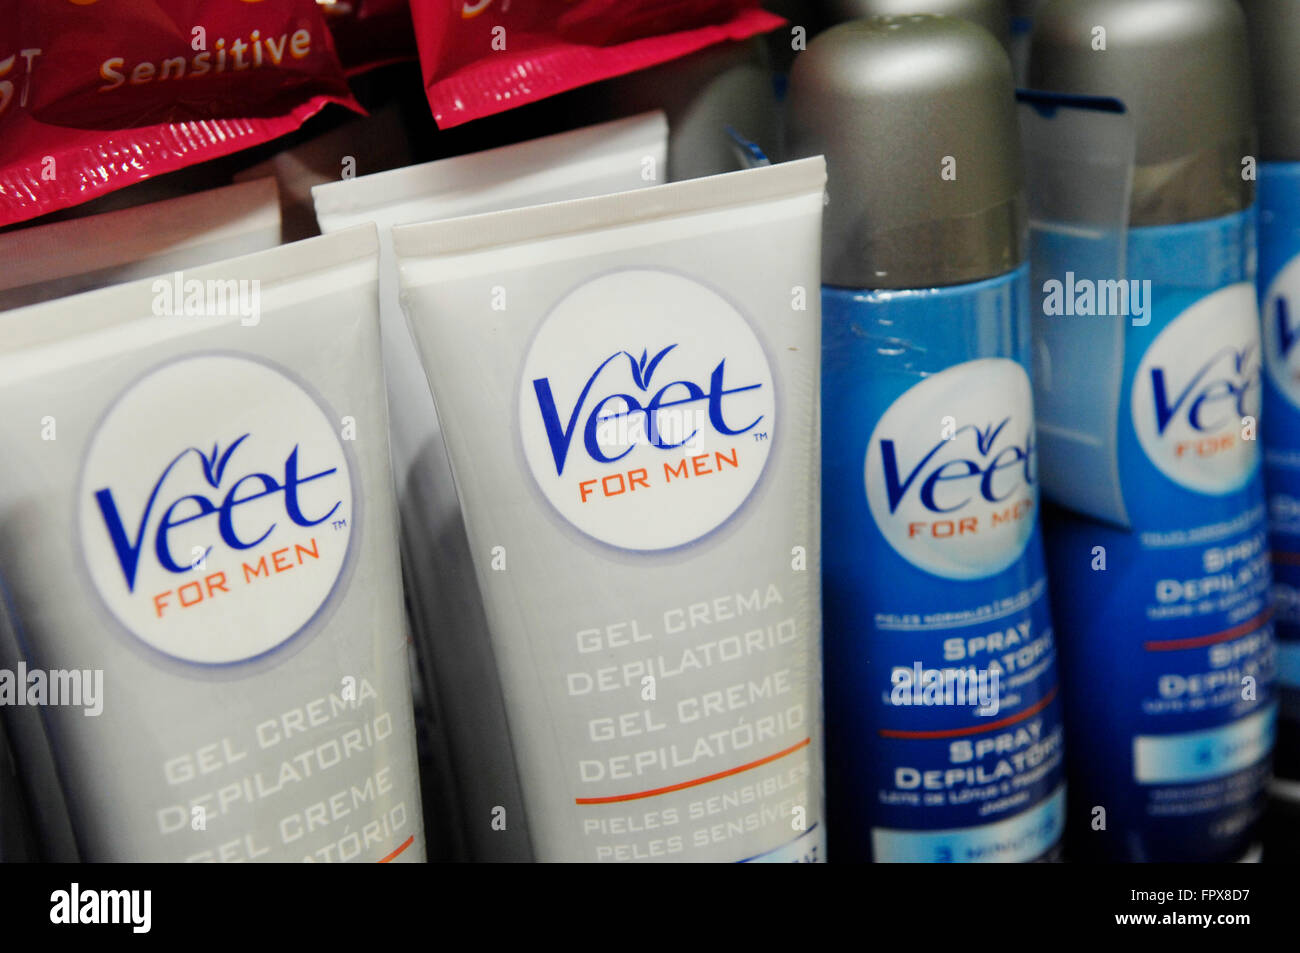 Veet For Men Hair Removal Gel Cream On Display In A Supermarket